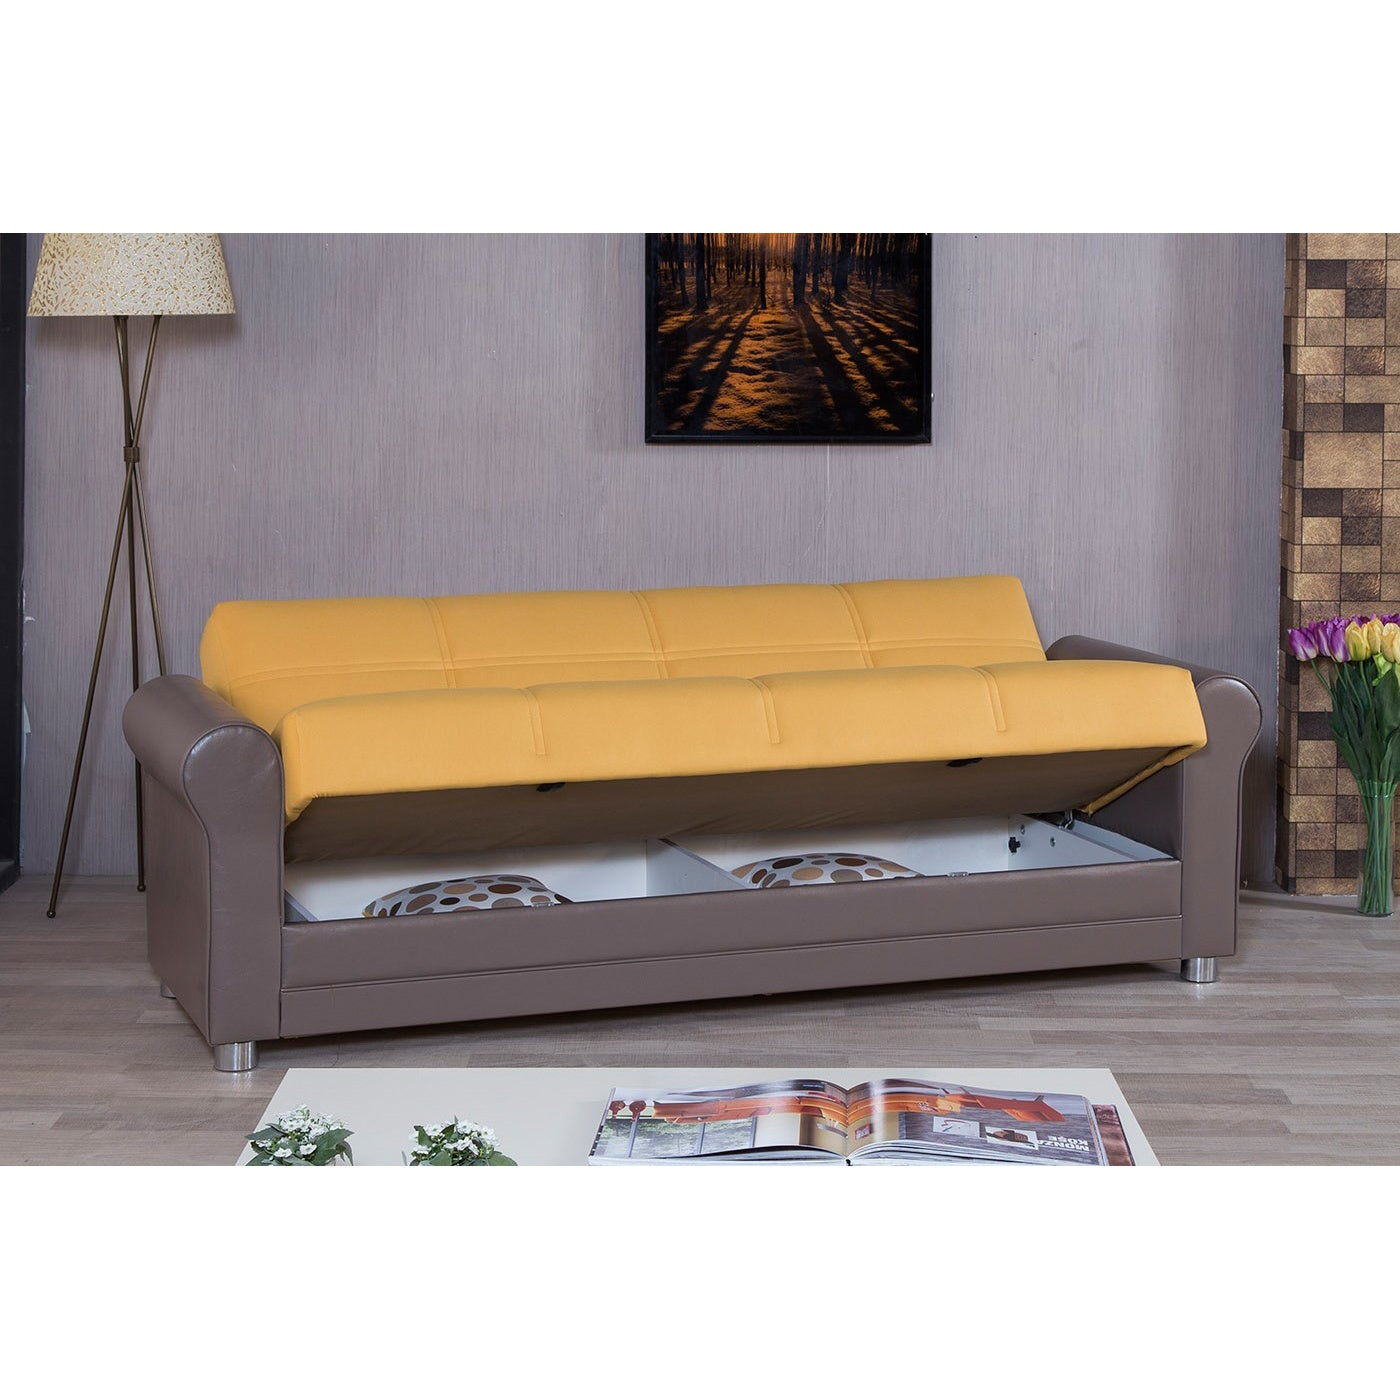 Avalon Futon Convertible Sleeper Sofa Bed On Free Shipping Today 11854472